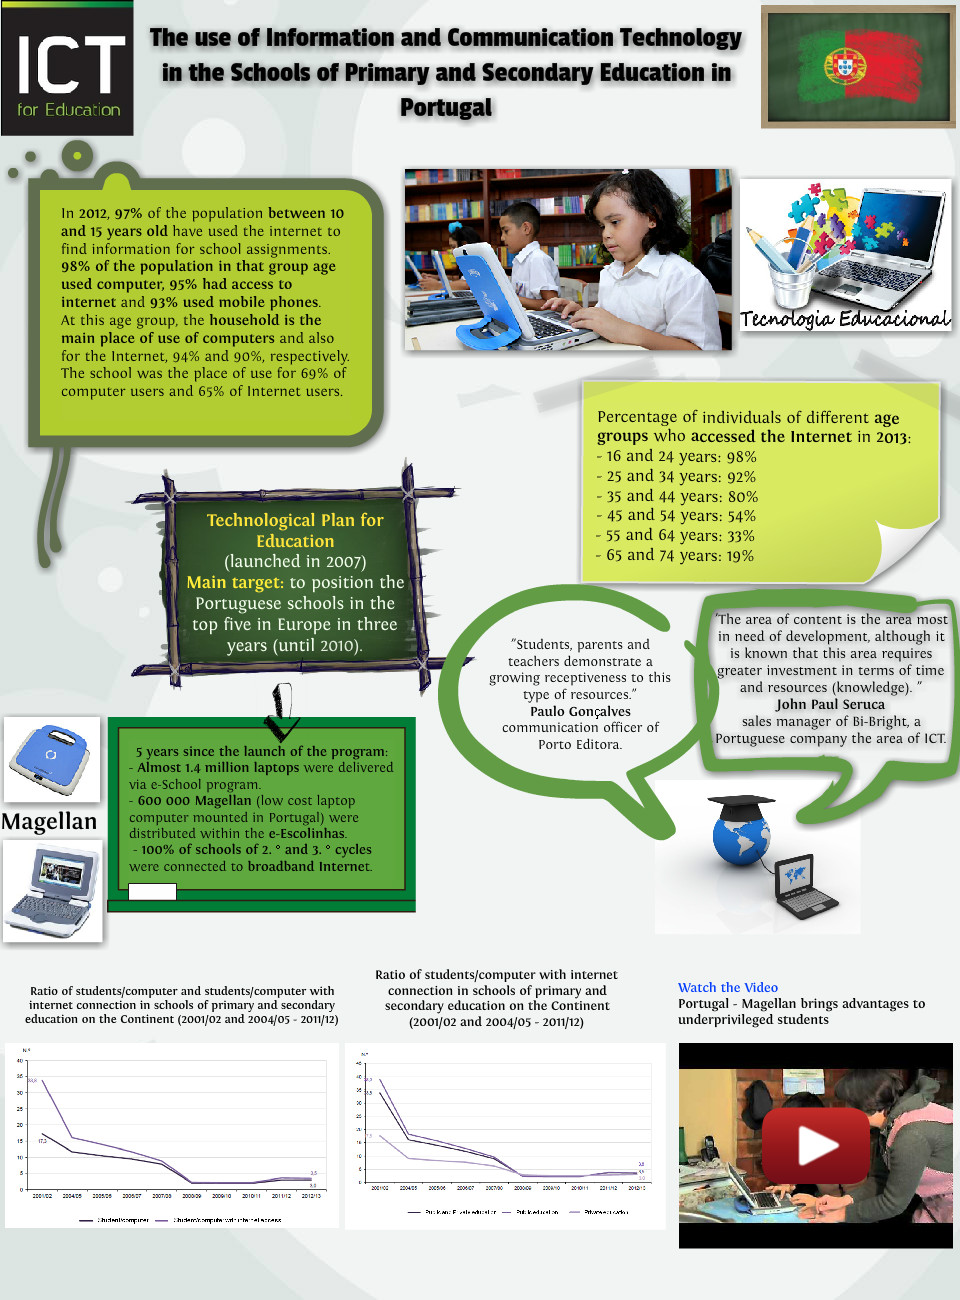 The use of ICT in the schools of primary and secondary education in Portugal